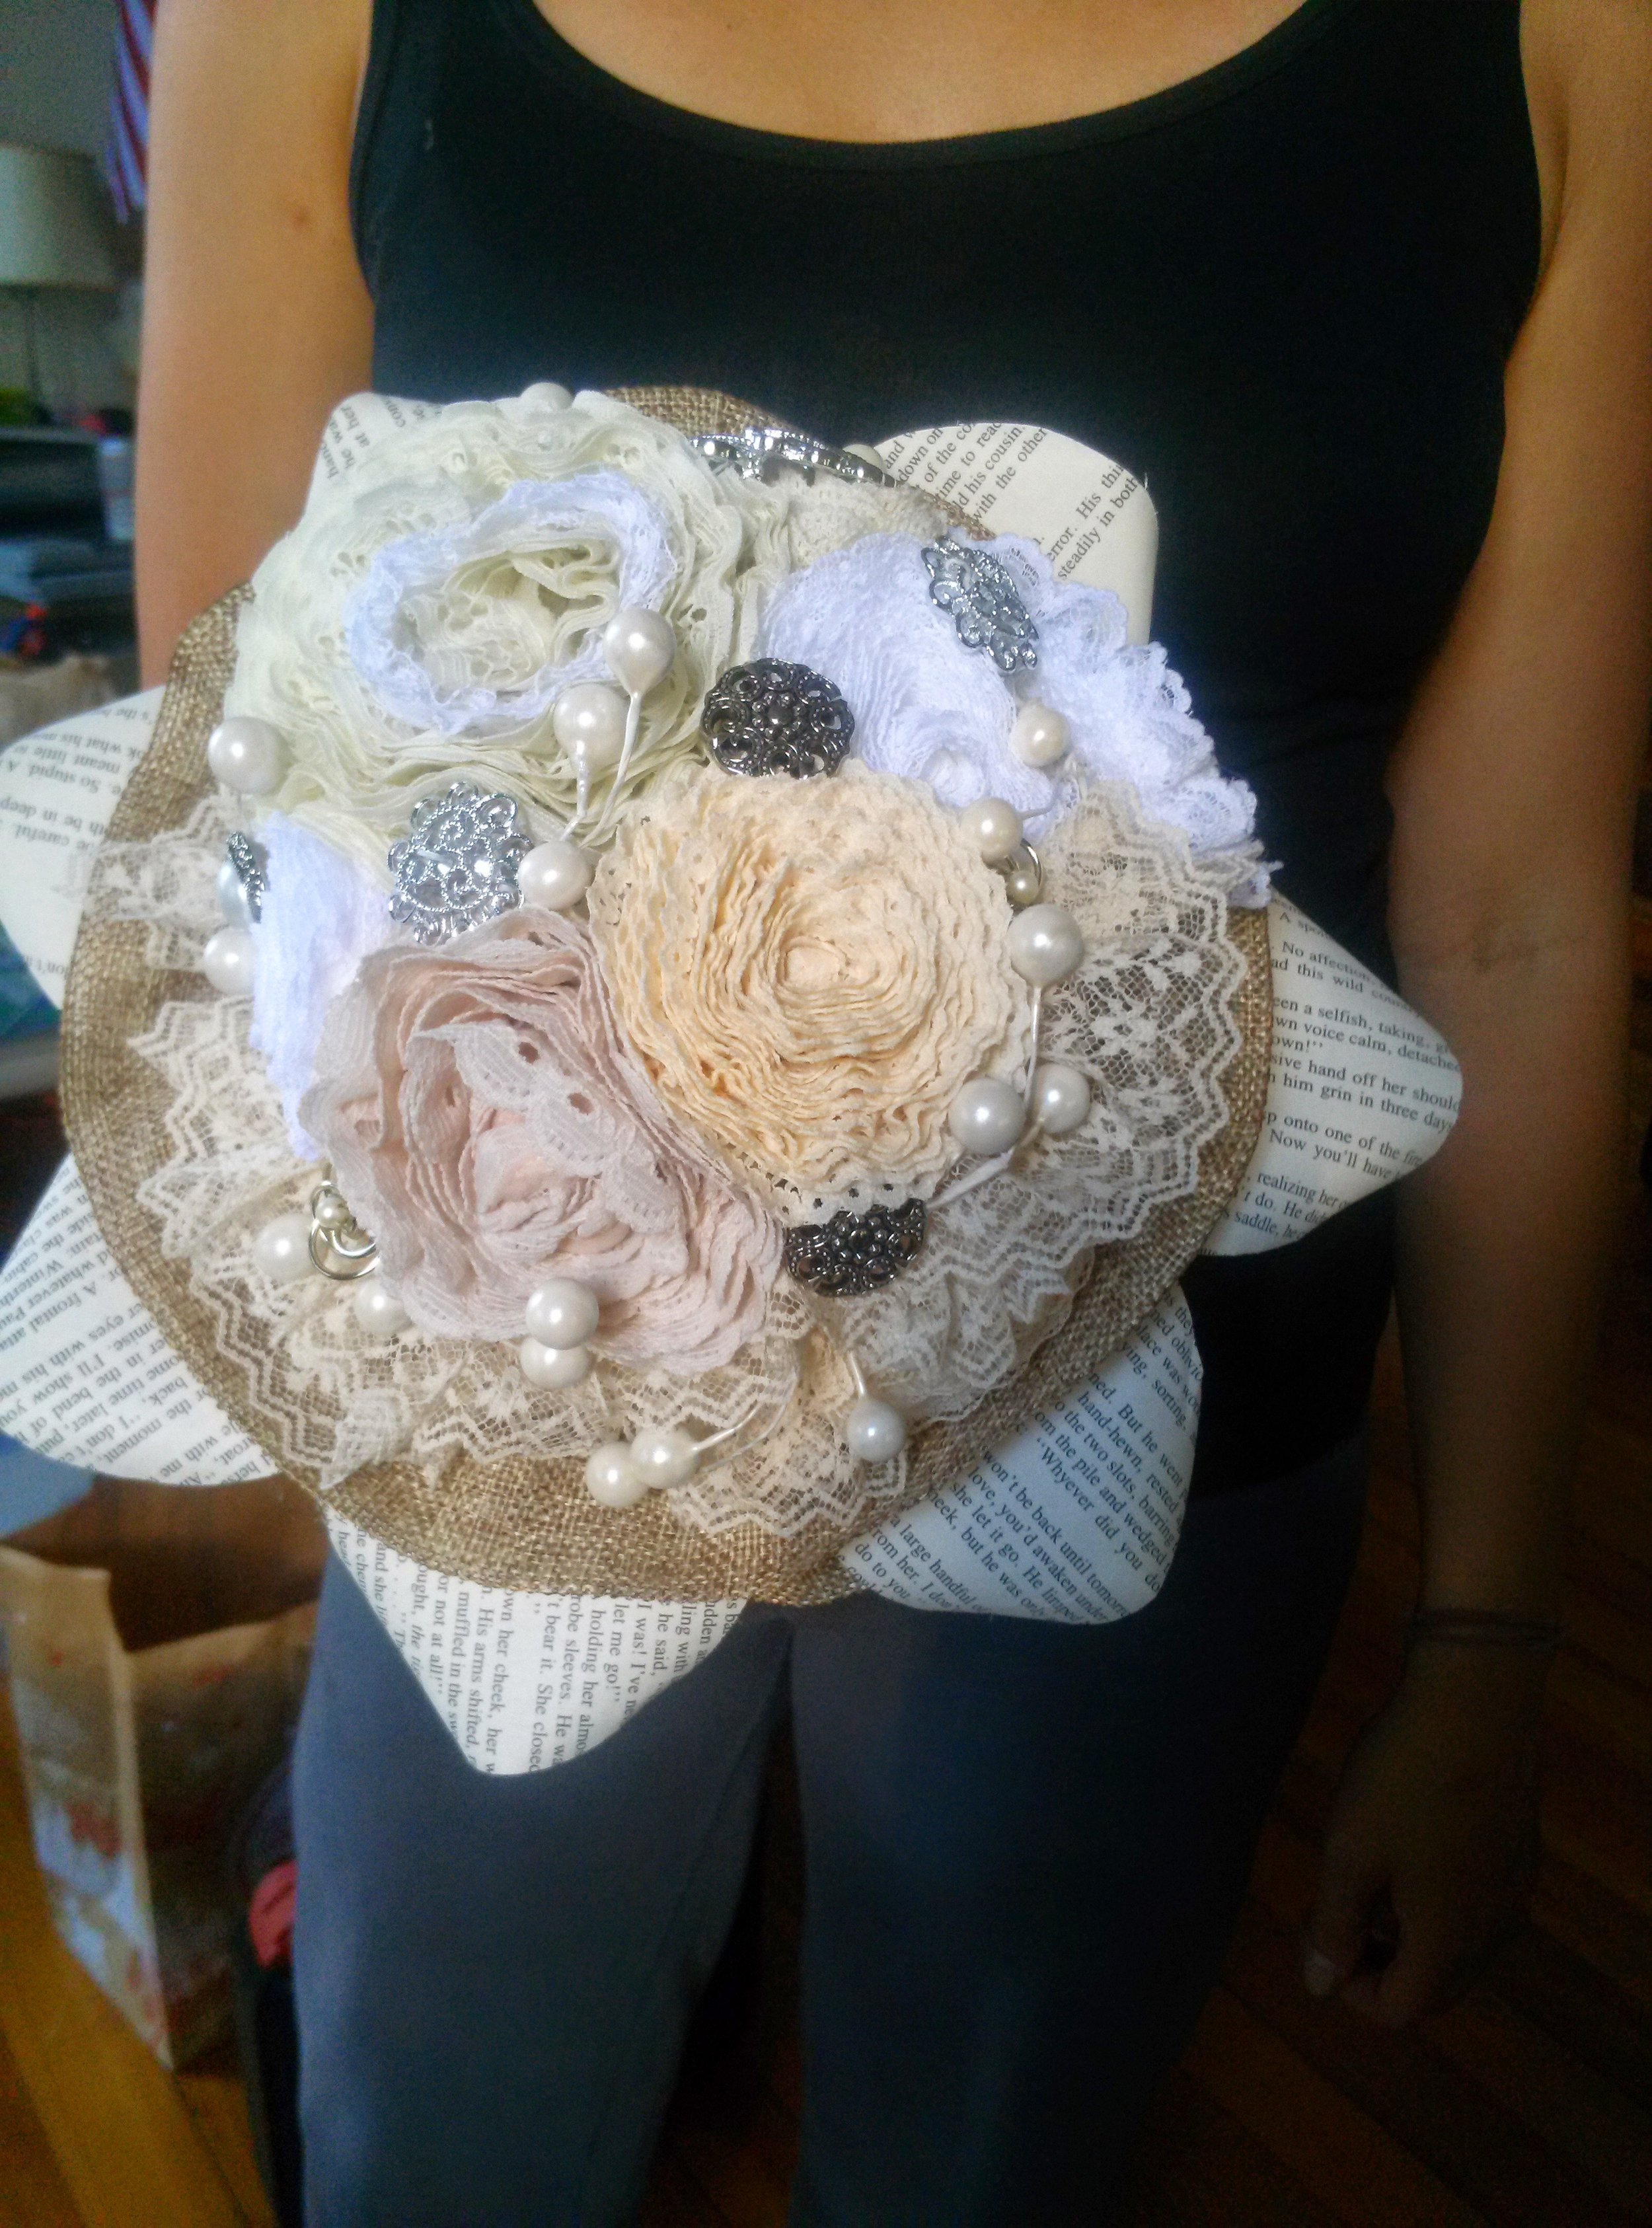 A bride-to-be came to us with an idea and some supplies. She buttons and brooches from her grandmother and lace from an old friend, which she dreamed could be her wedding bouquet. By adding a few additional materials and getting a group of girls together, this bouquet came together quite easily! We also made boutineers and corsages to match!